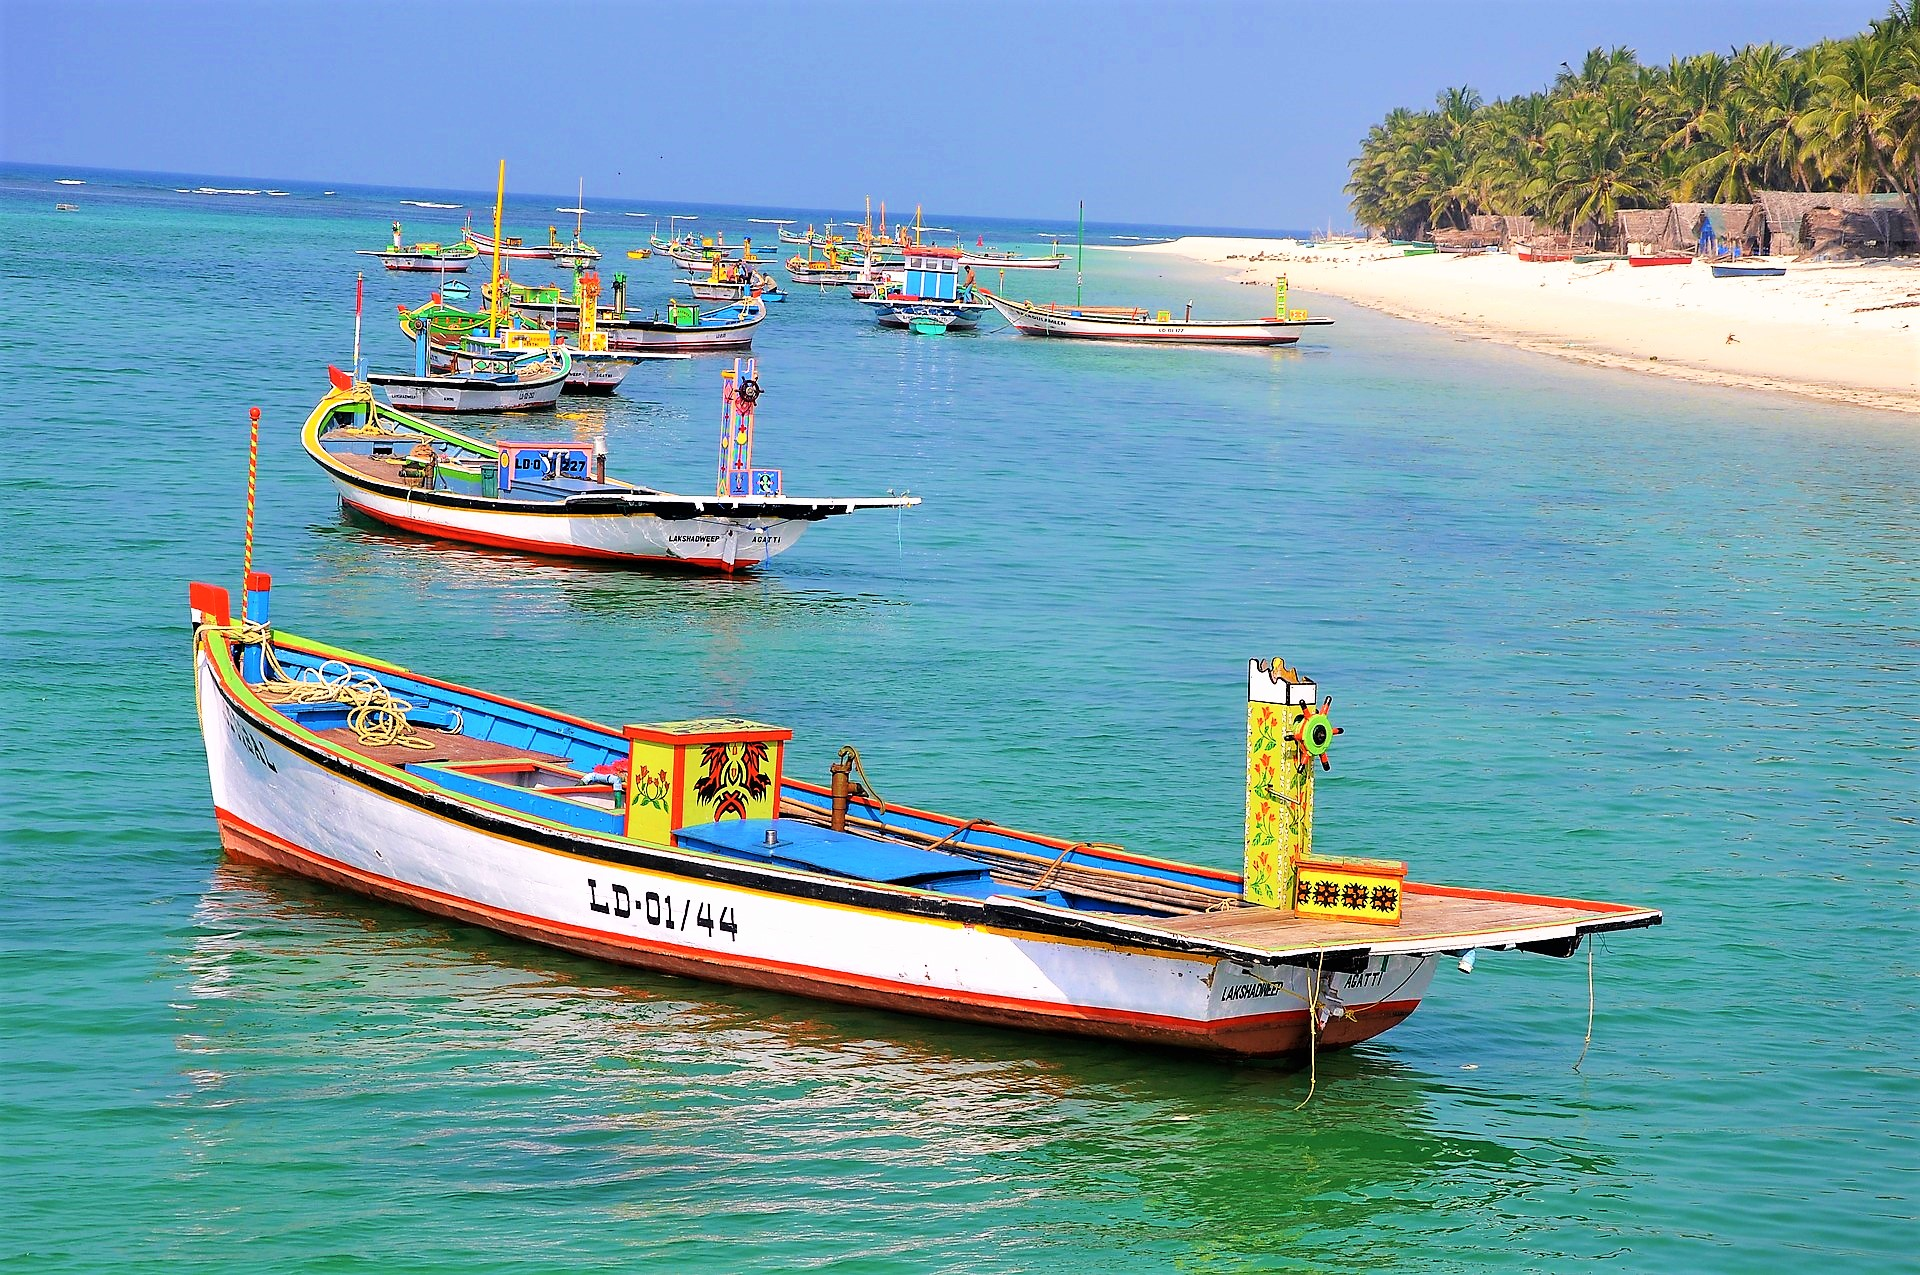 HOW THE DILEMMA STARTED IN LAKSHADWEEP?